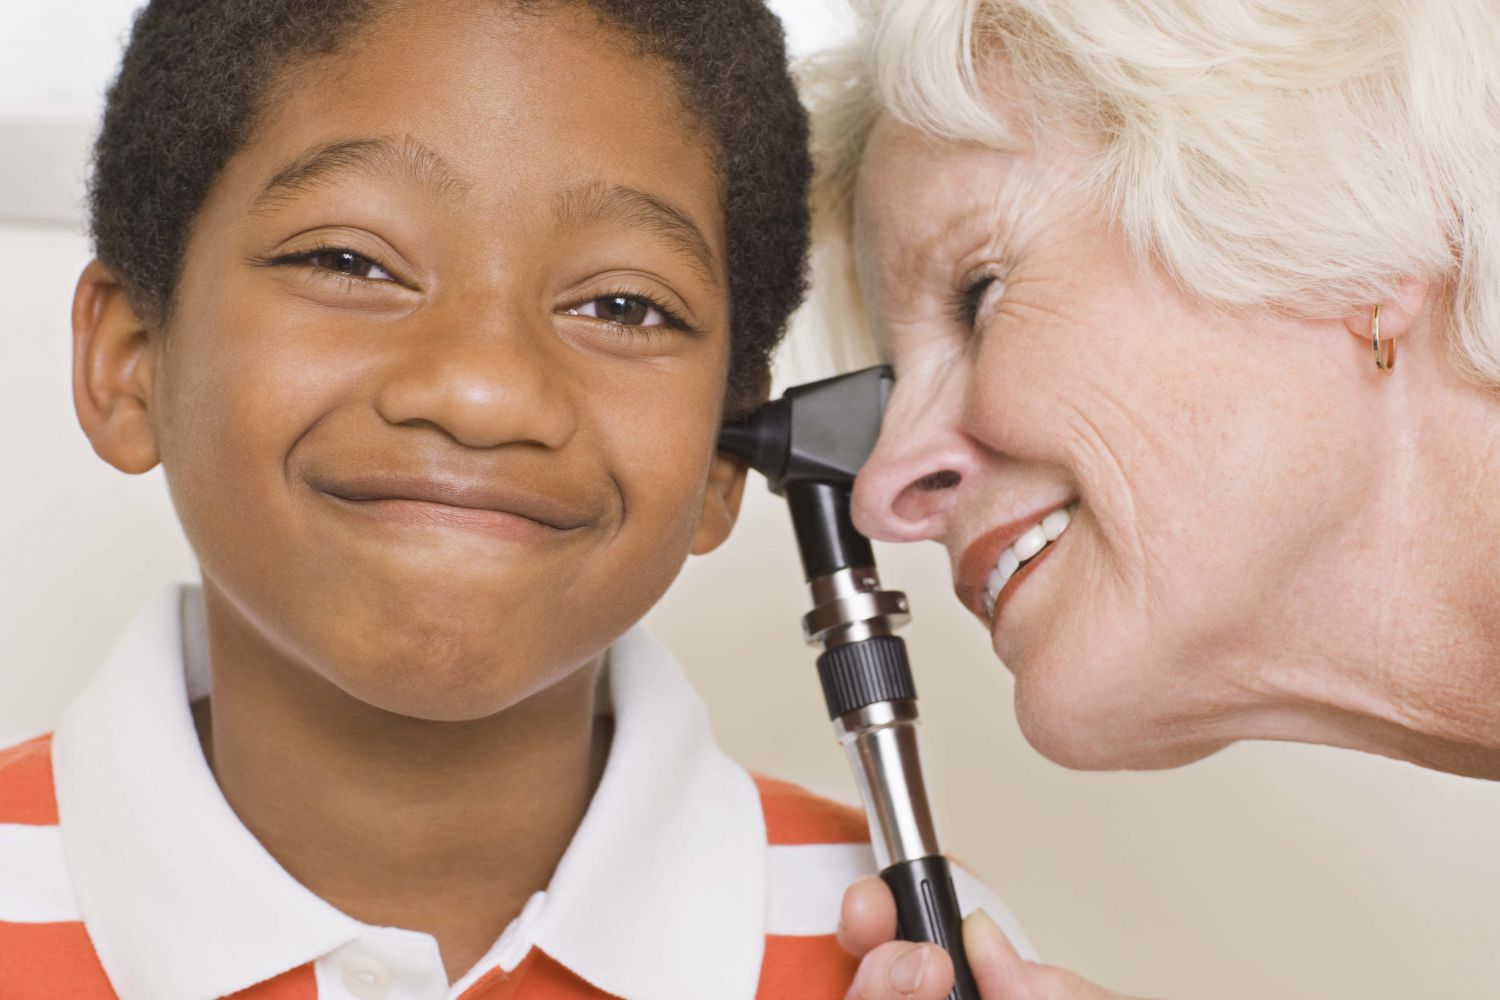 audiologist gives boy a hearing test in Cincinnati, OH